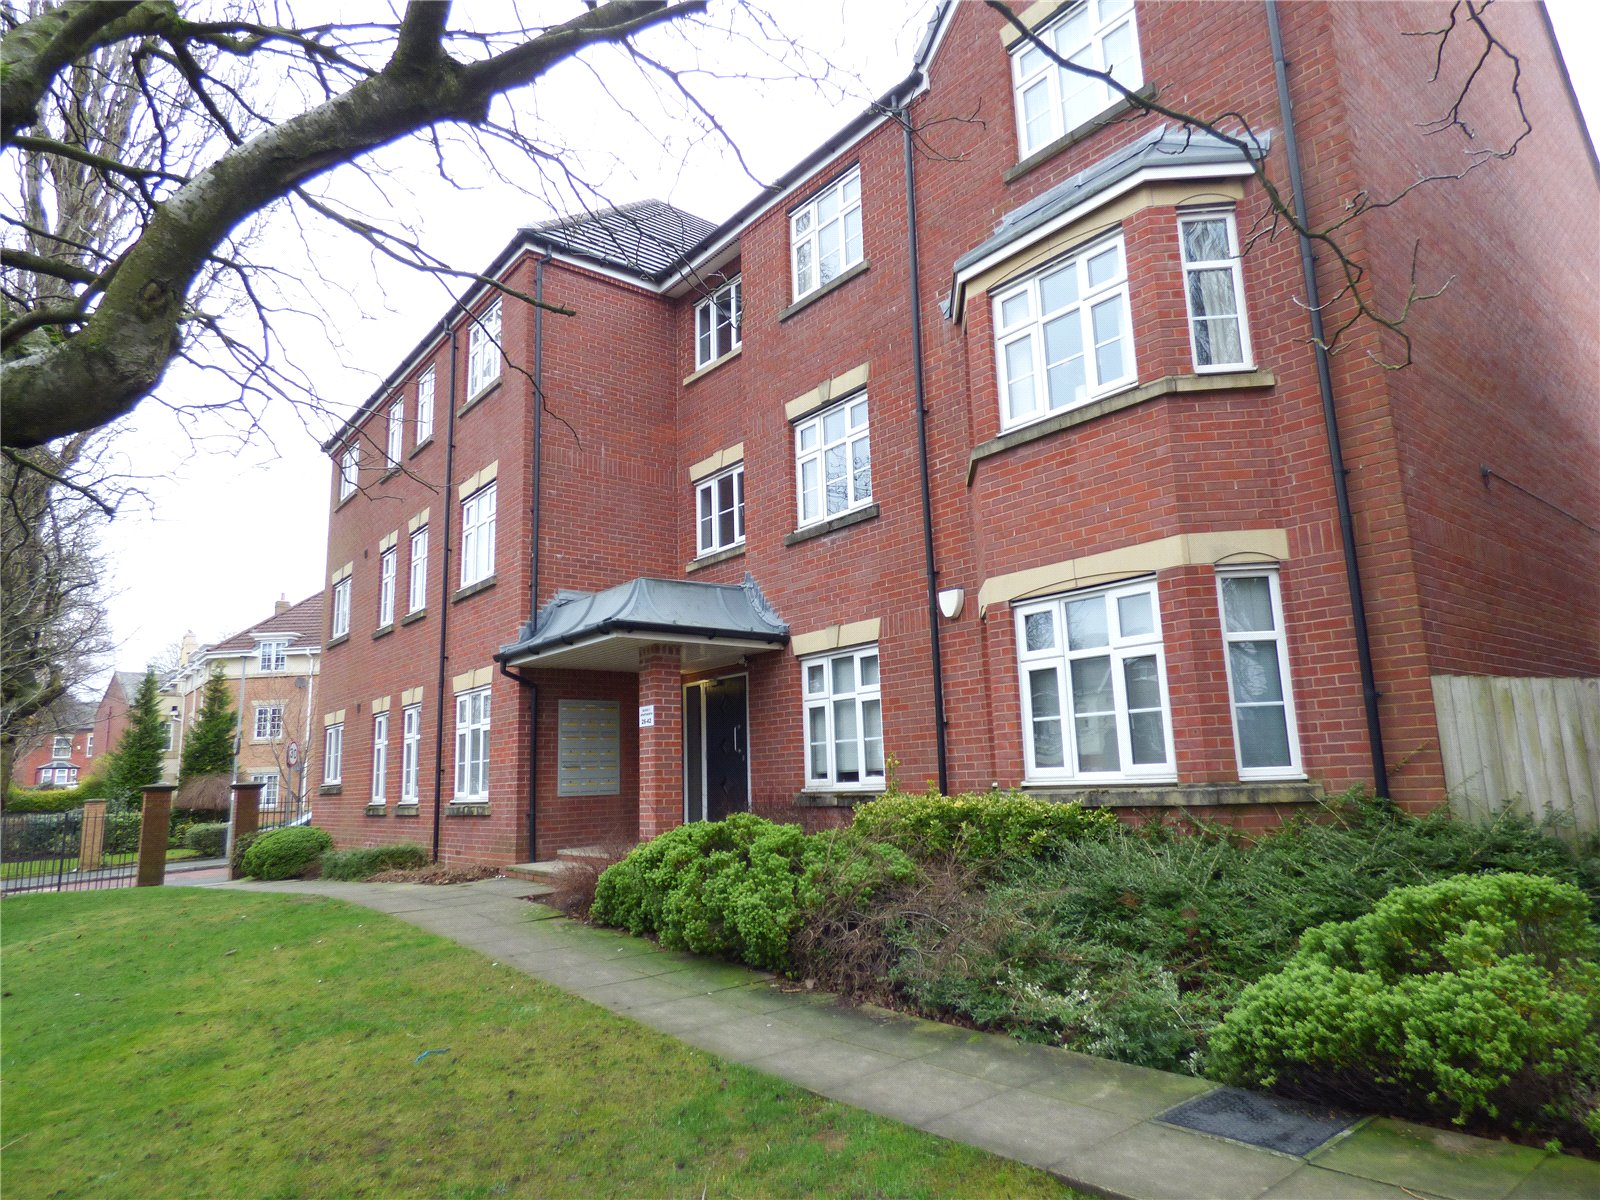 2 Bedrooms Apartment Flat for sale in Hardy Close, Dukinfield, Greater Manchester, SK16